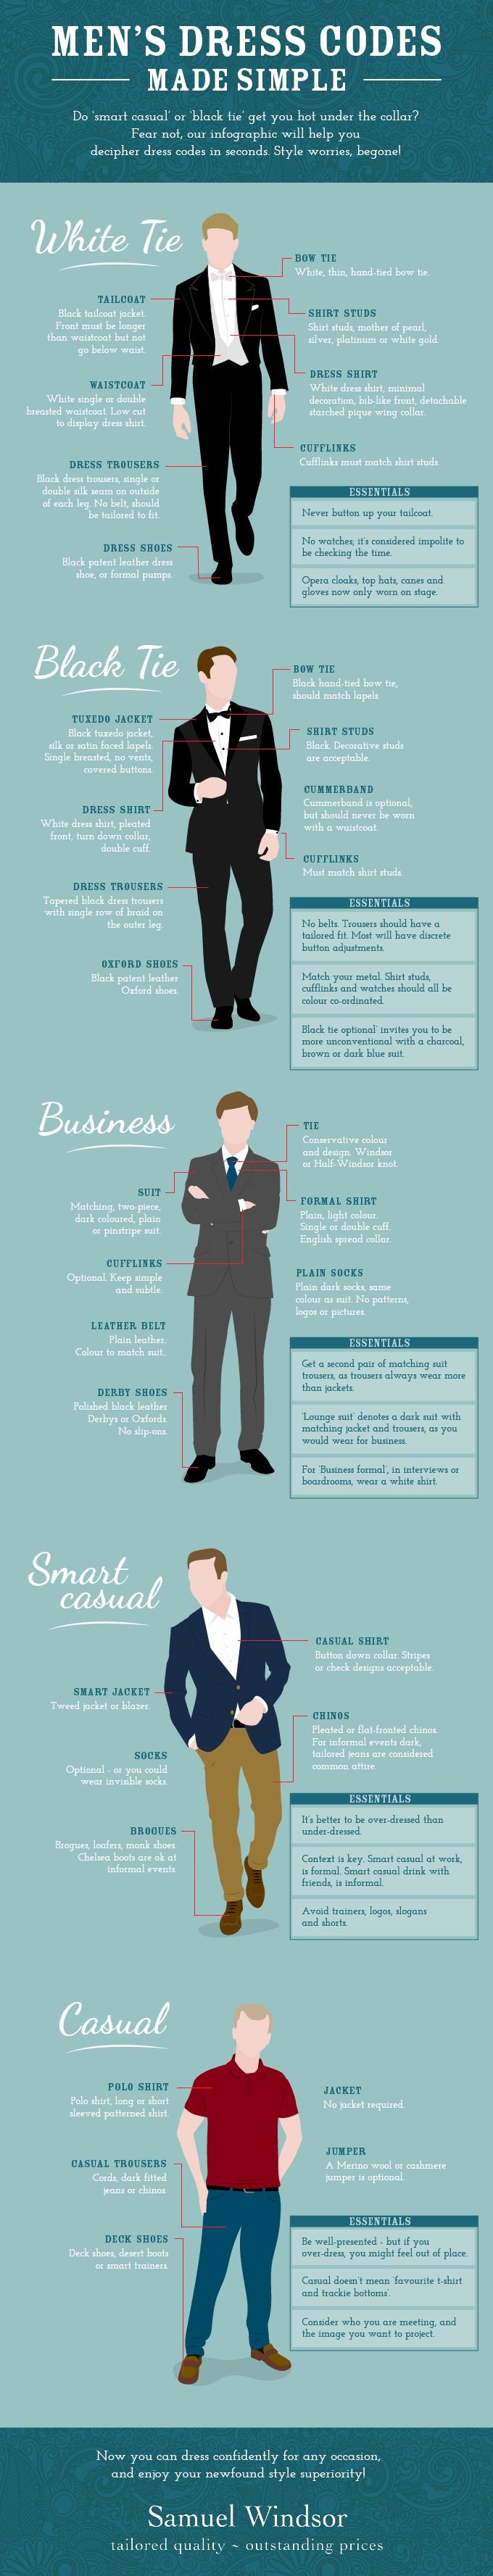 """Want to look the business? This visual guide to men's dress codes helps you guarantee an impeccable appearance at any function."""